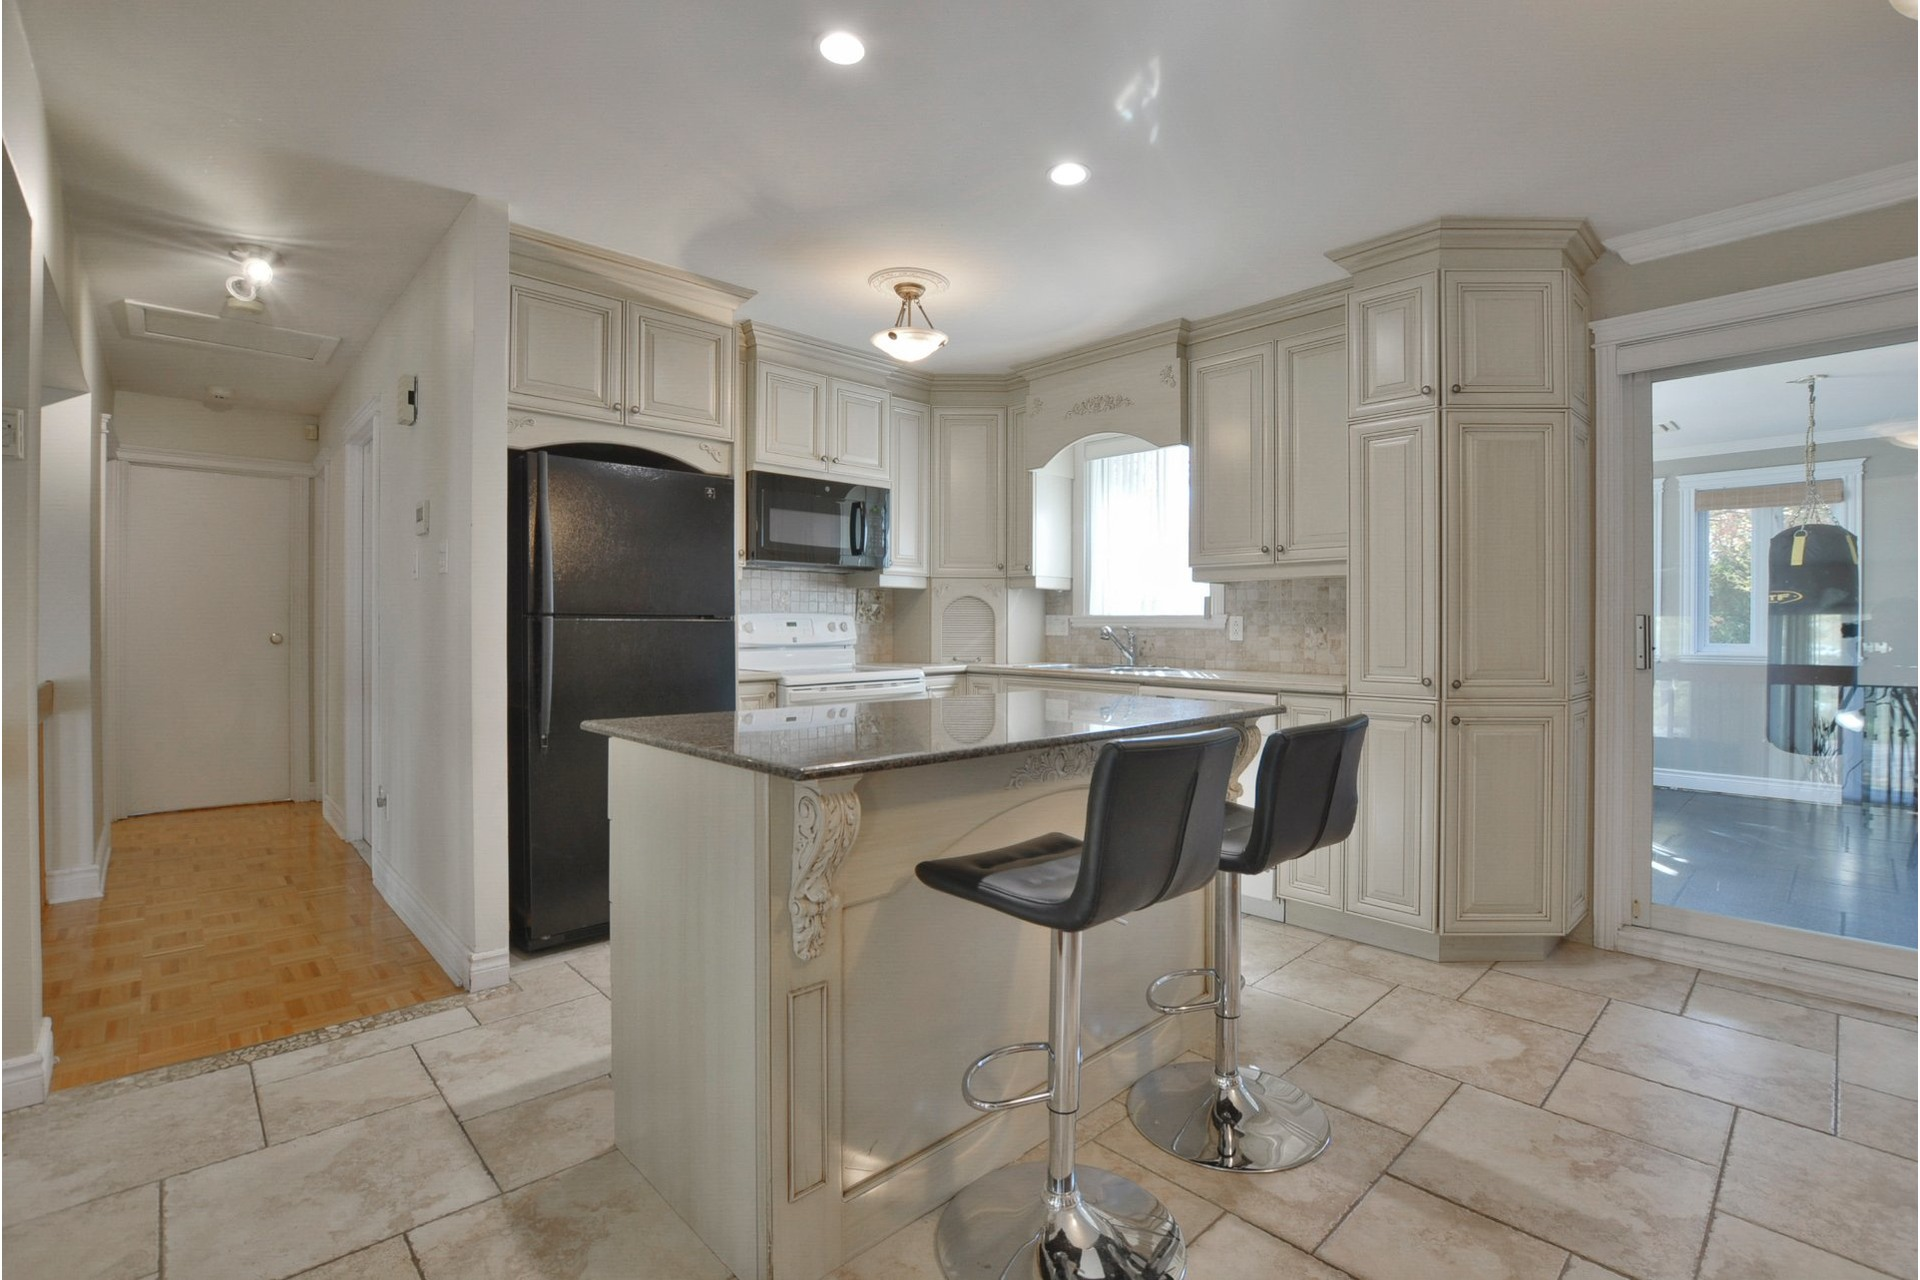 image 5 - House For sale Mascouche - 11 rooms